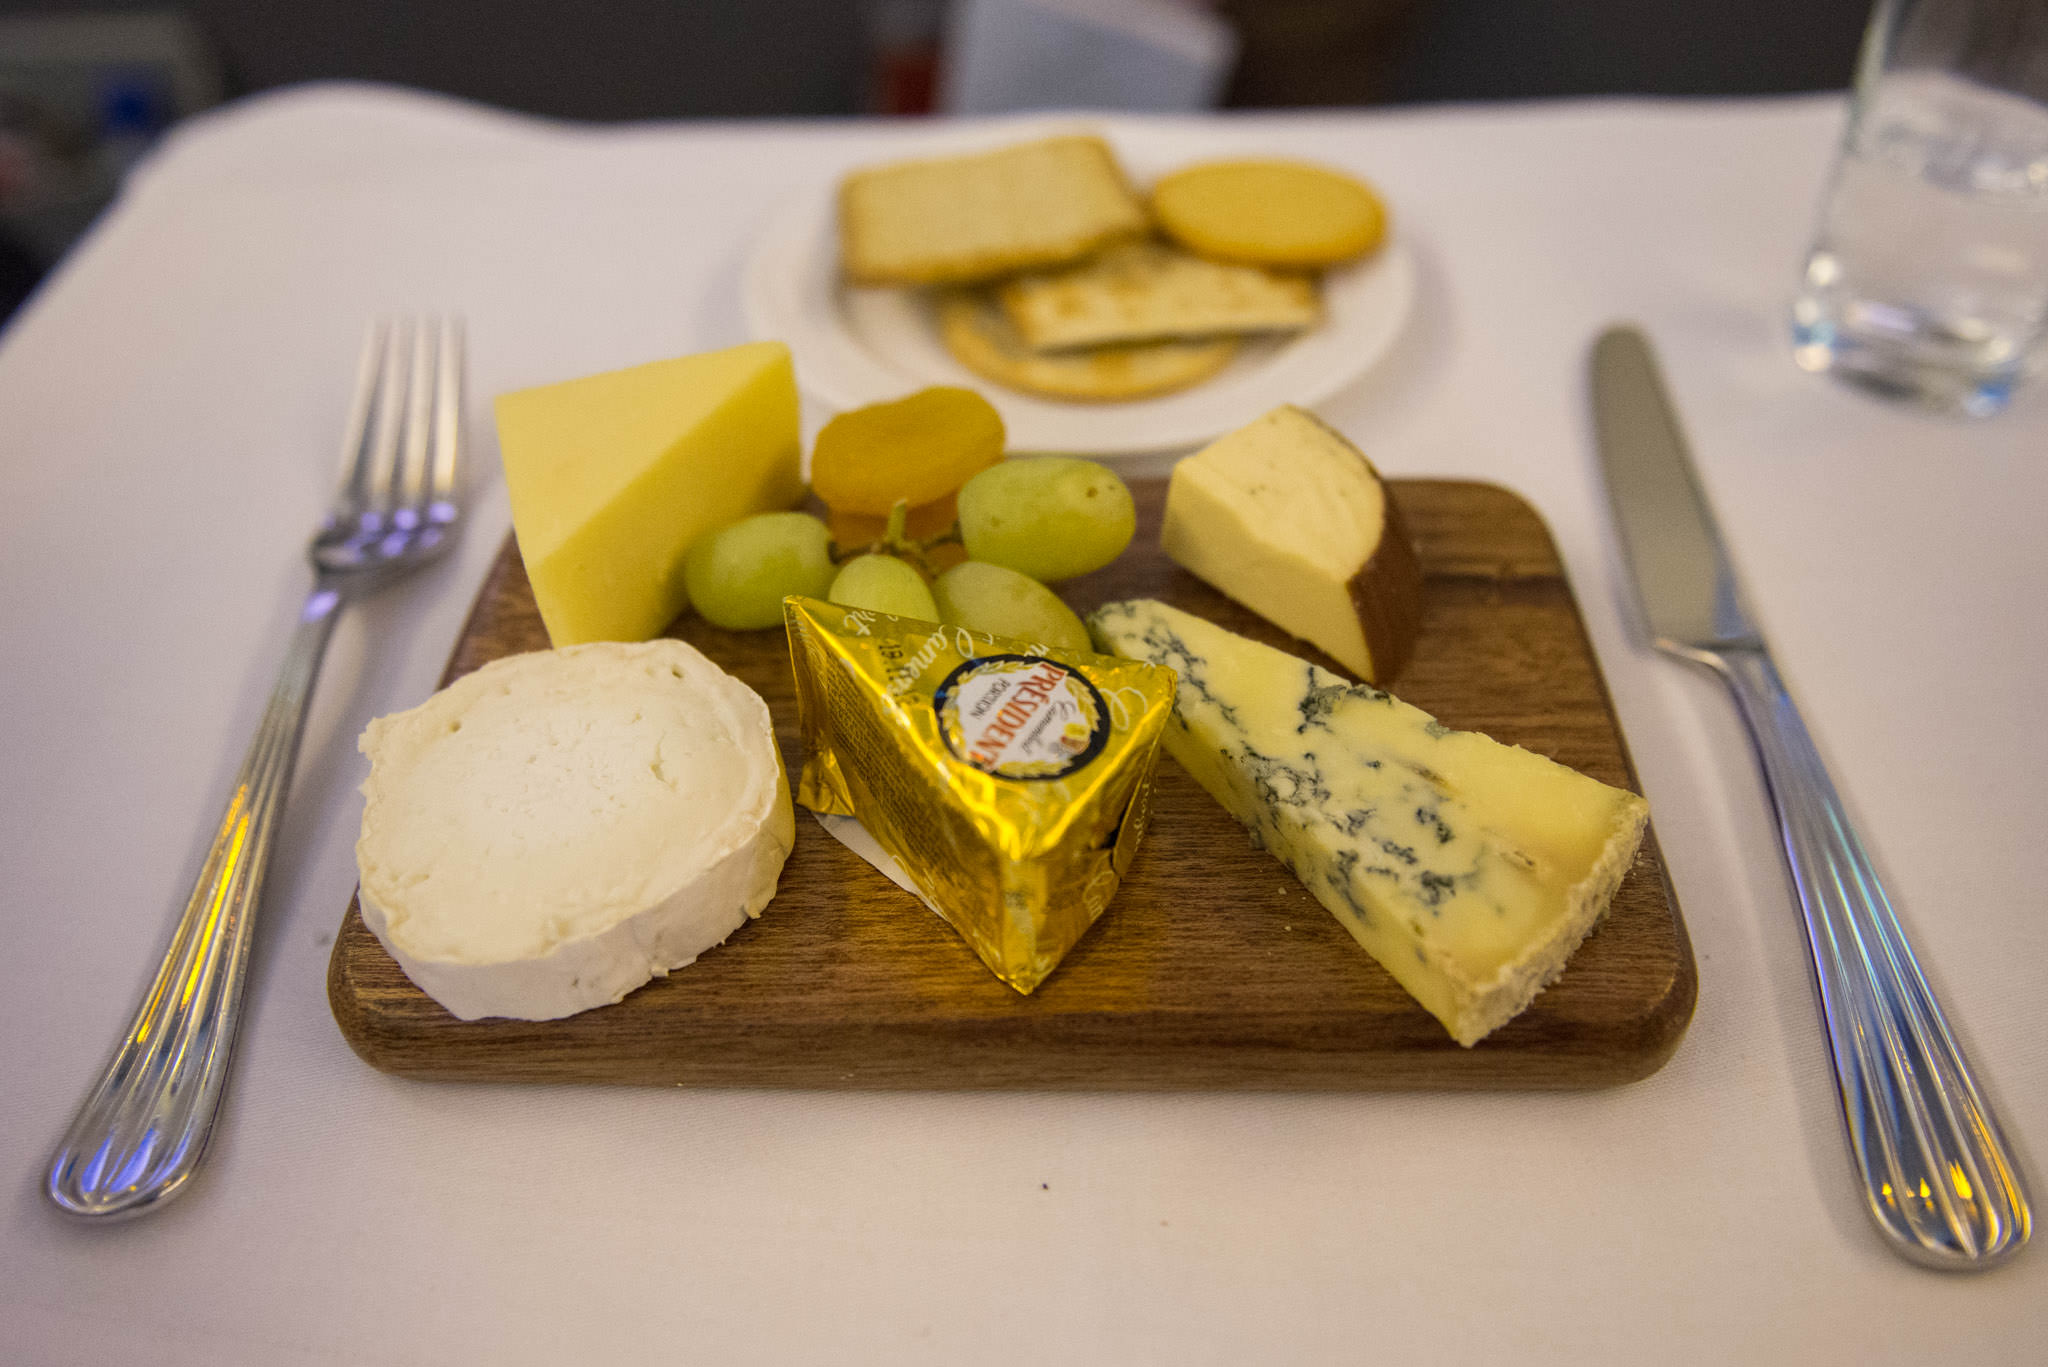 A generous cheeseboard for one